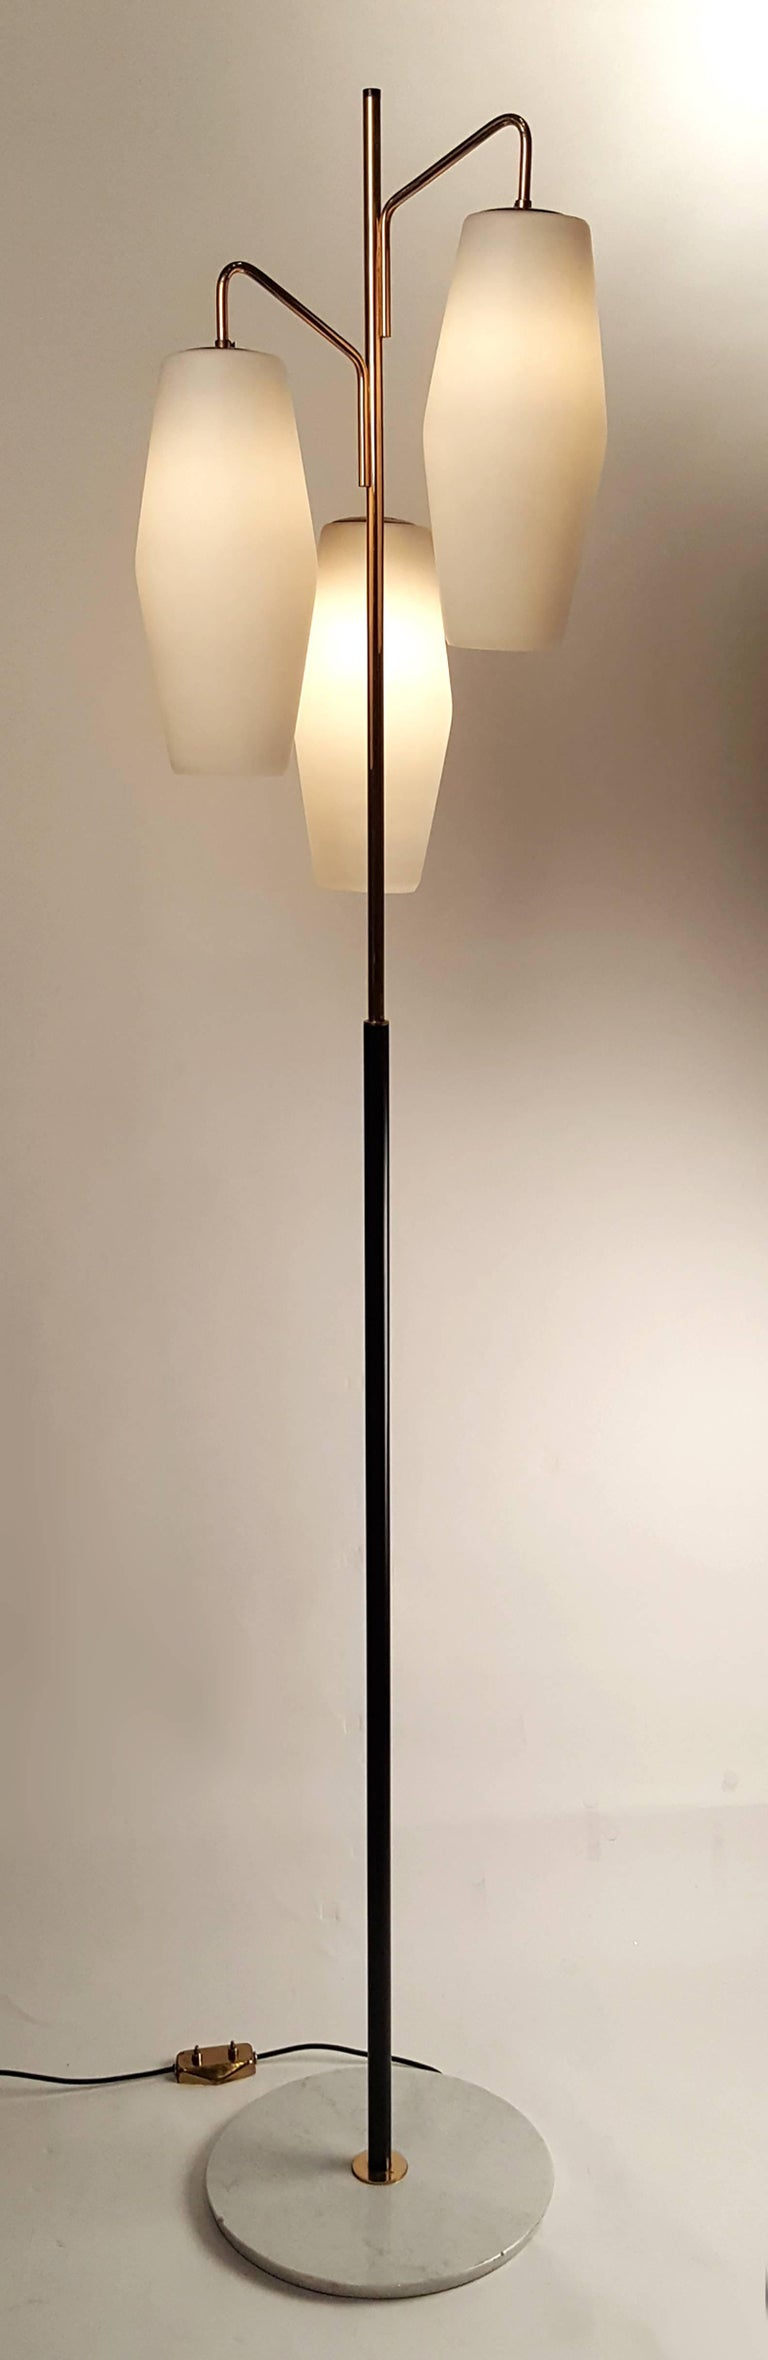 Frosted glass shades suspended on a gilt and black lacquered metal stem on a Carrara marble base with original foot switch. Stilnovo hallmark impressed into the steel to which the shades mount. Completely rewired.